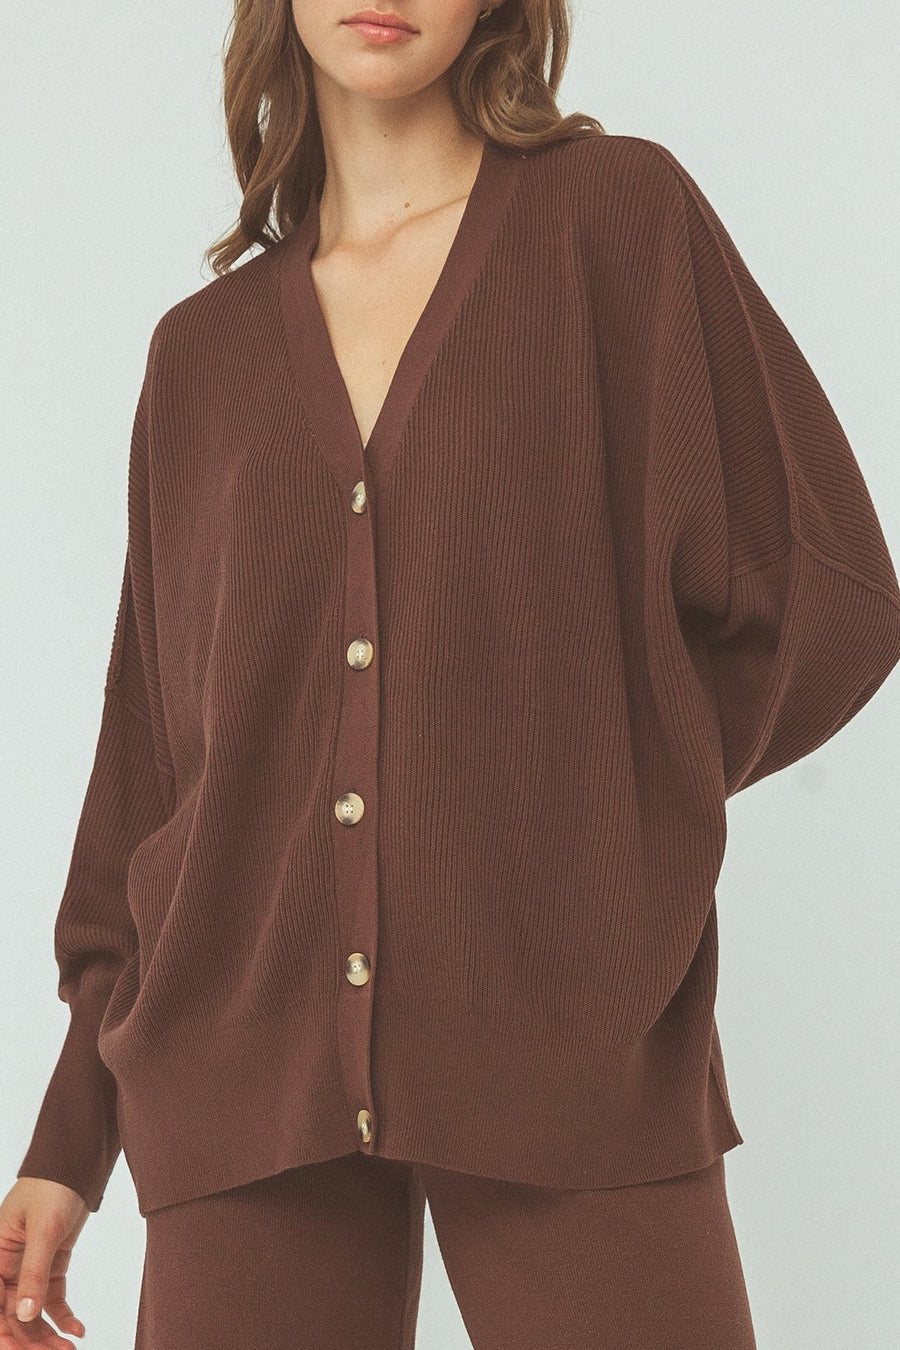 LOTTIE ORGANIC KNIT CARDIGAN CHOCOLATE